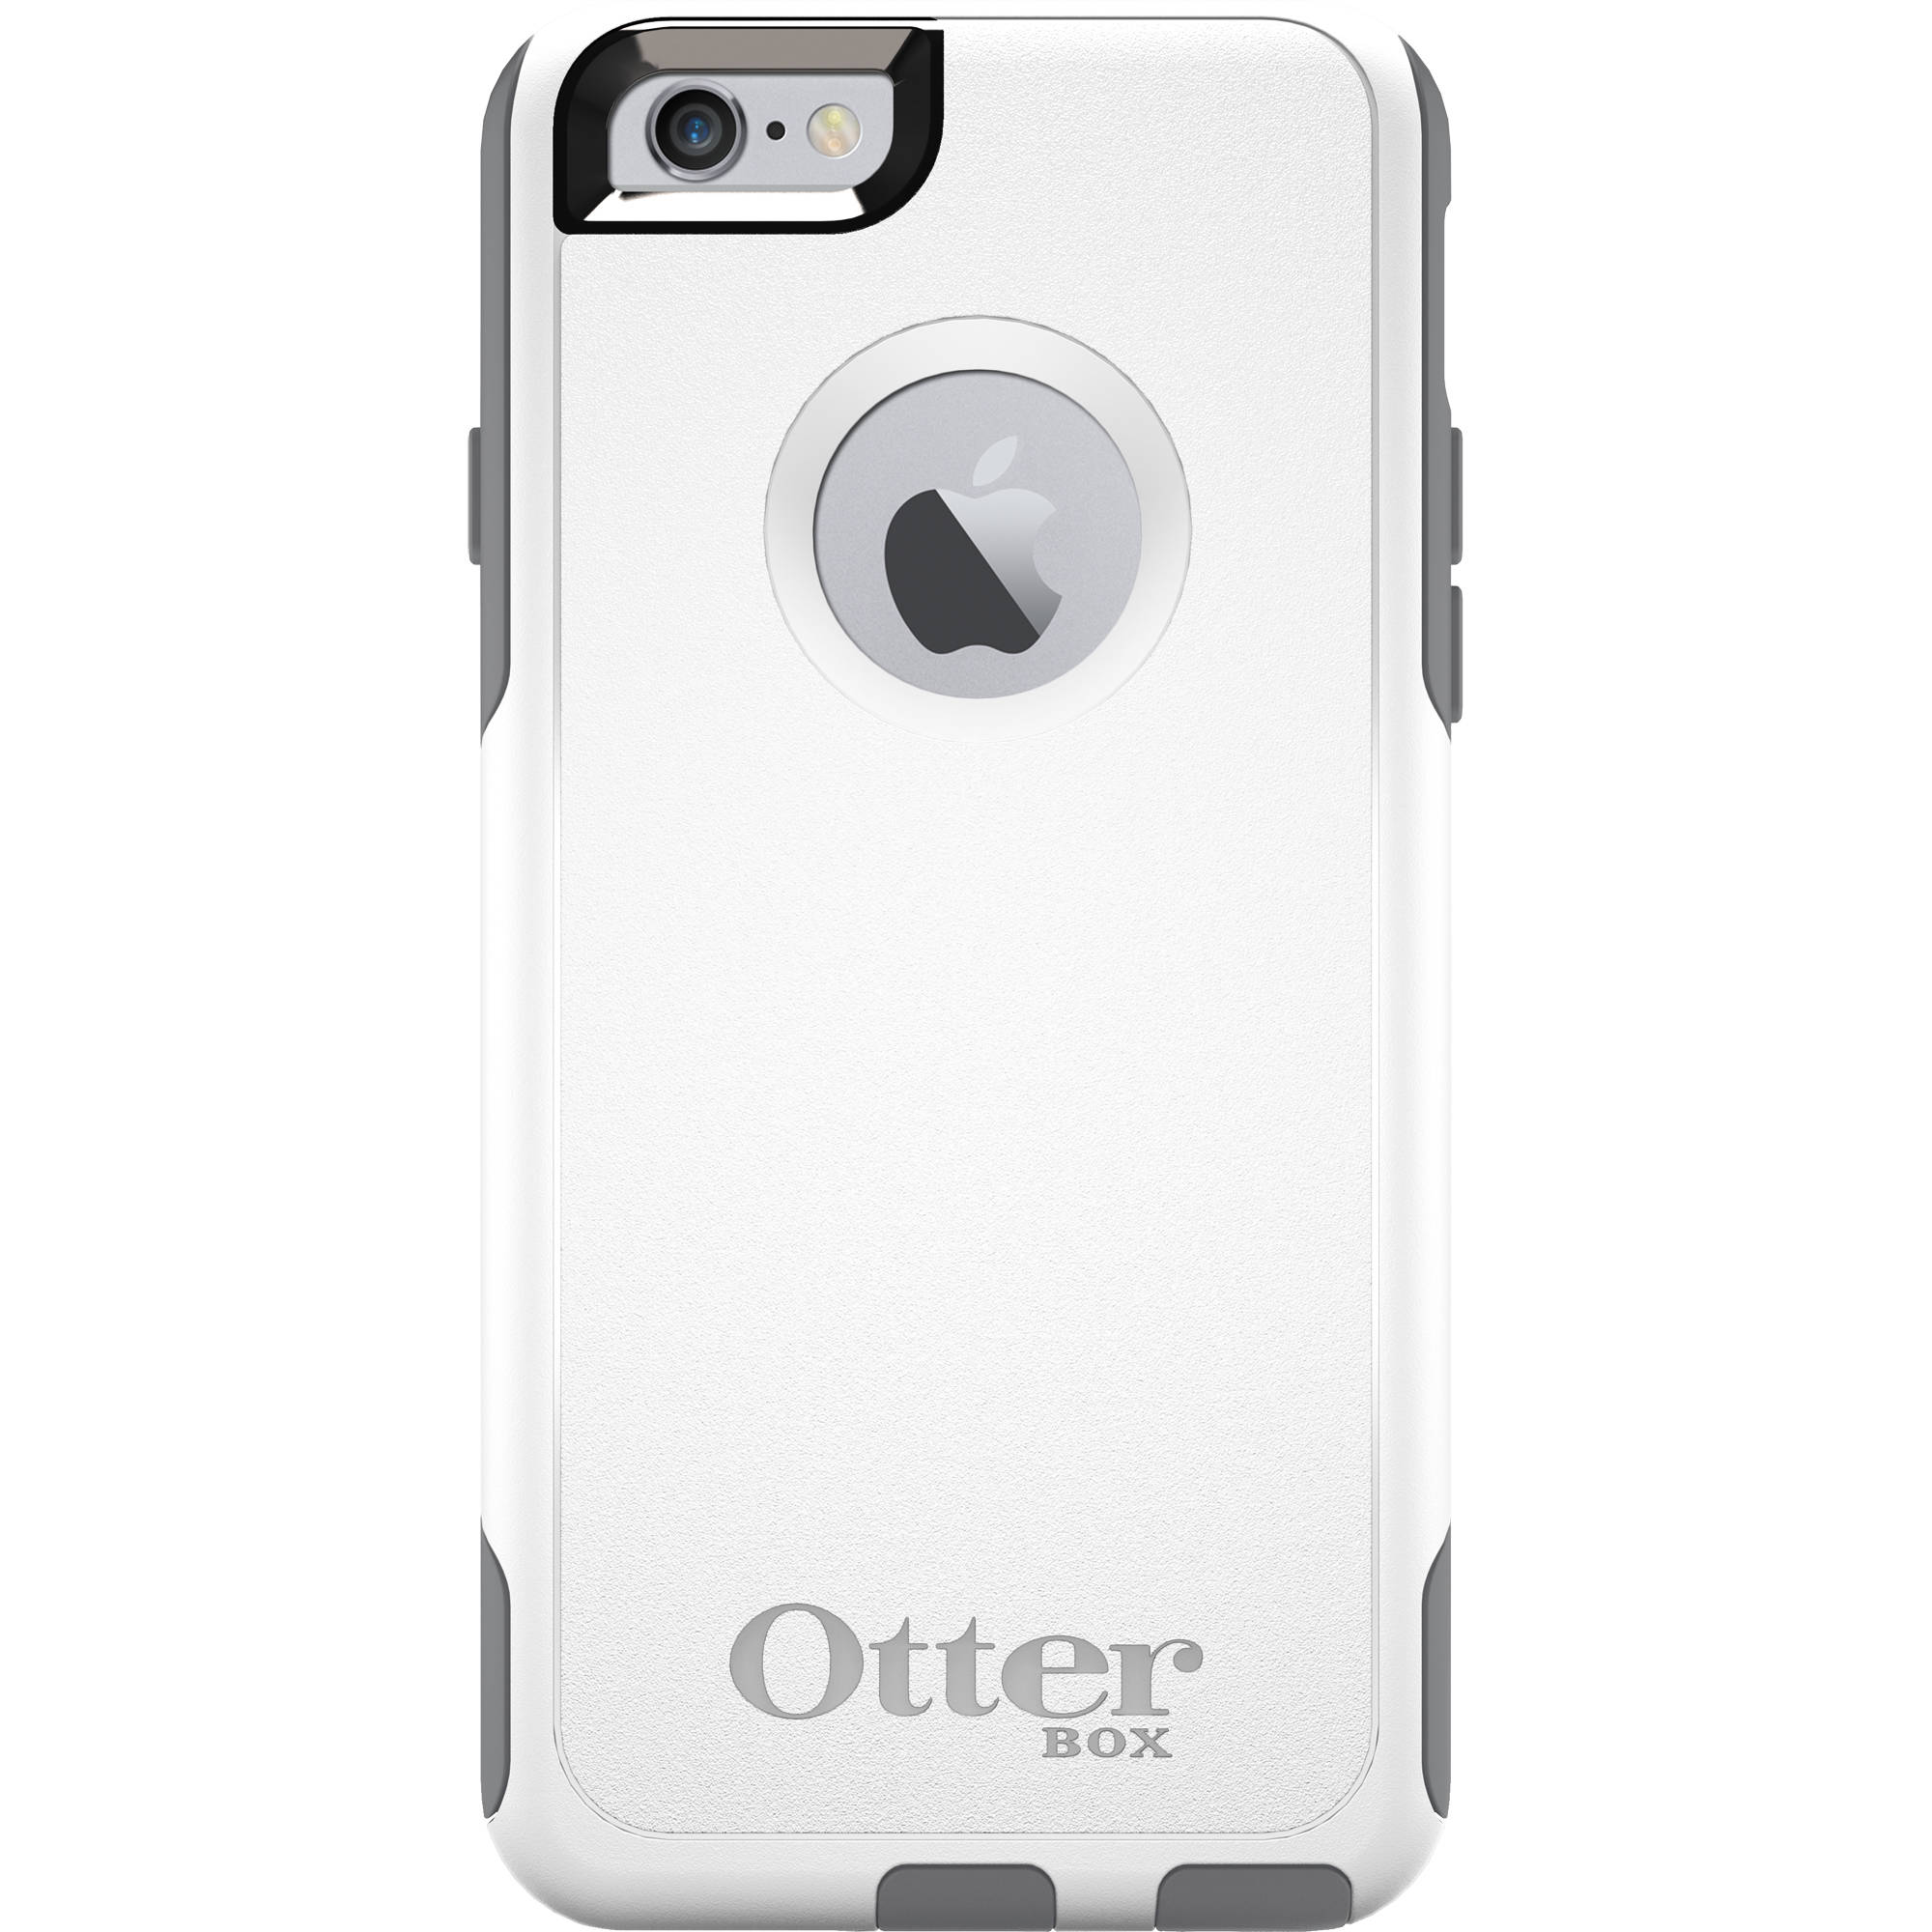 otterboxes for iphone 6 otter box commuter for iphone 6 glacier 77 50218 b amp h 15826